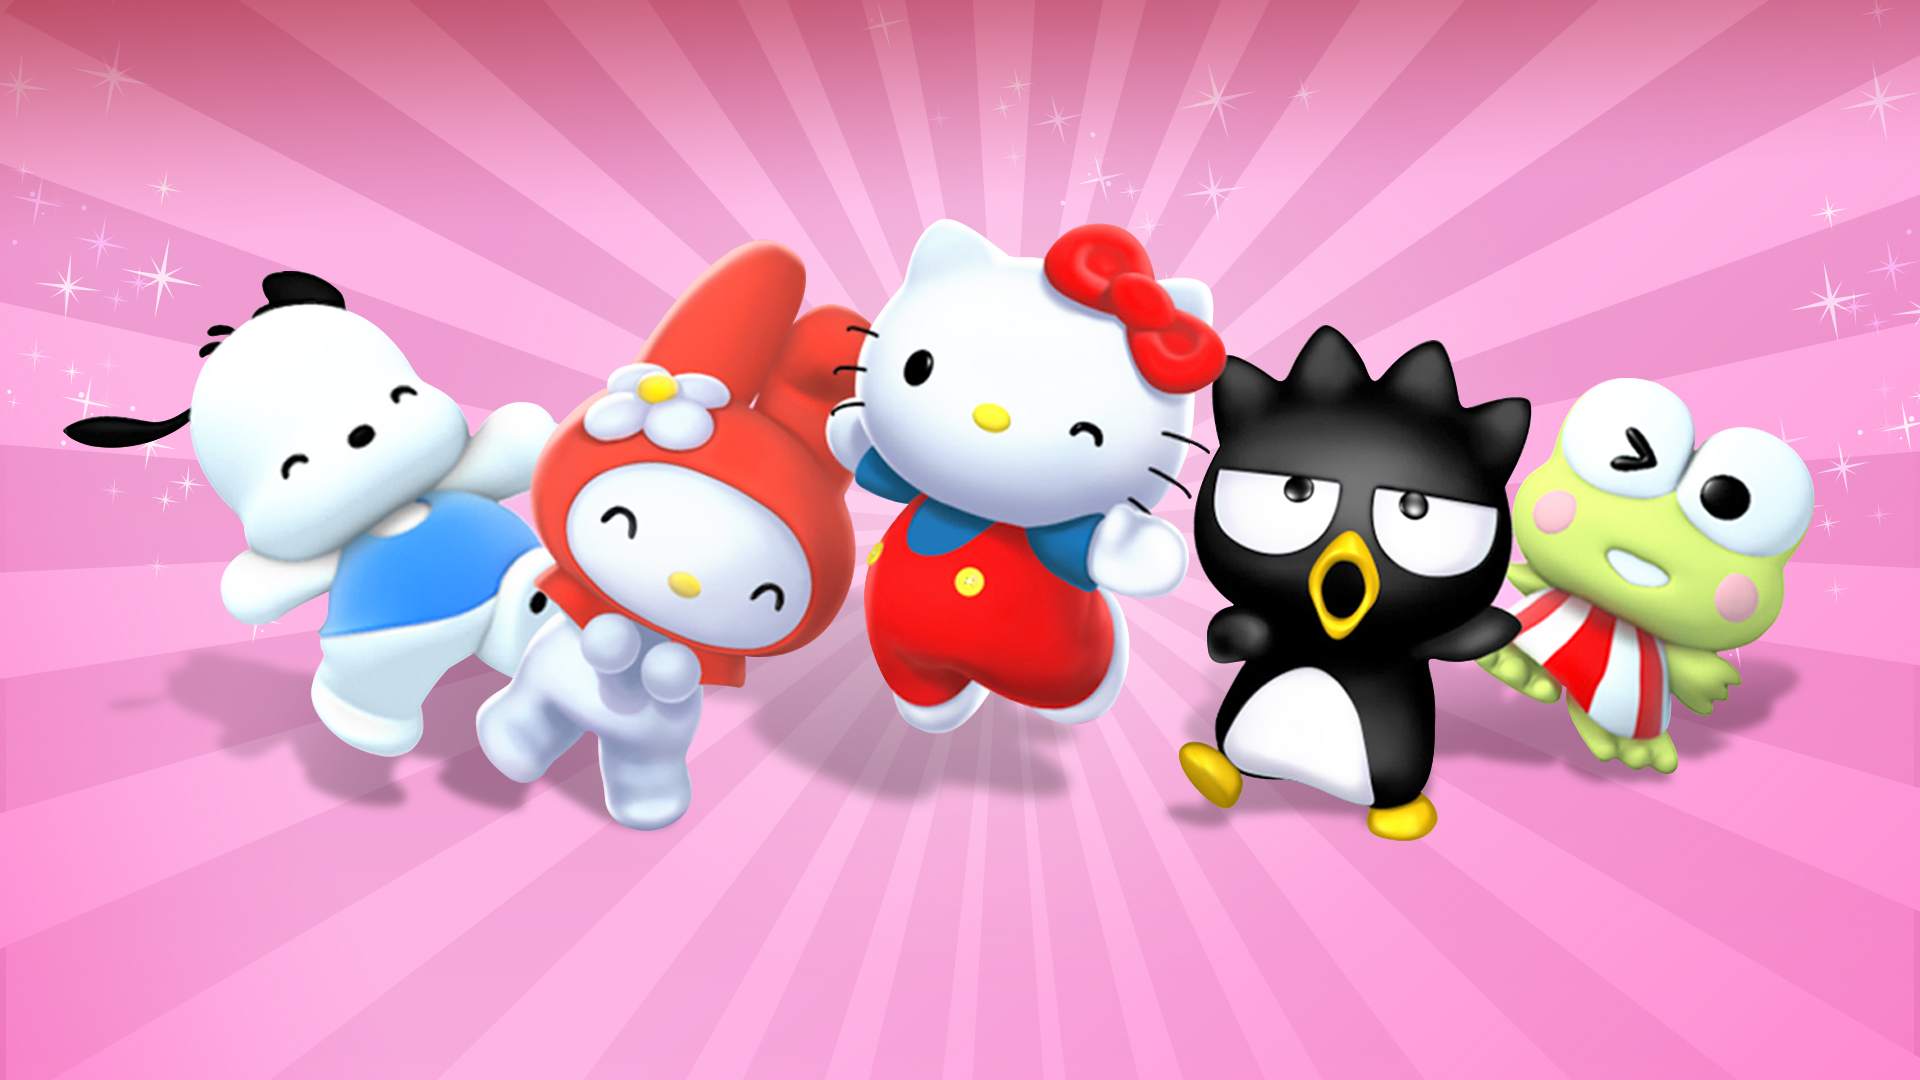 Simple Wallpaper Hello Kitty Friend - Characters_in_The_Adventures_of_Hello_Kitty_and_Friends  Pic_92669.jpg